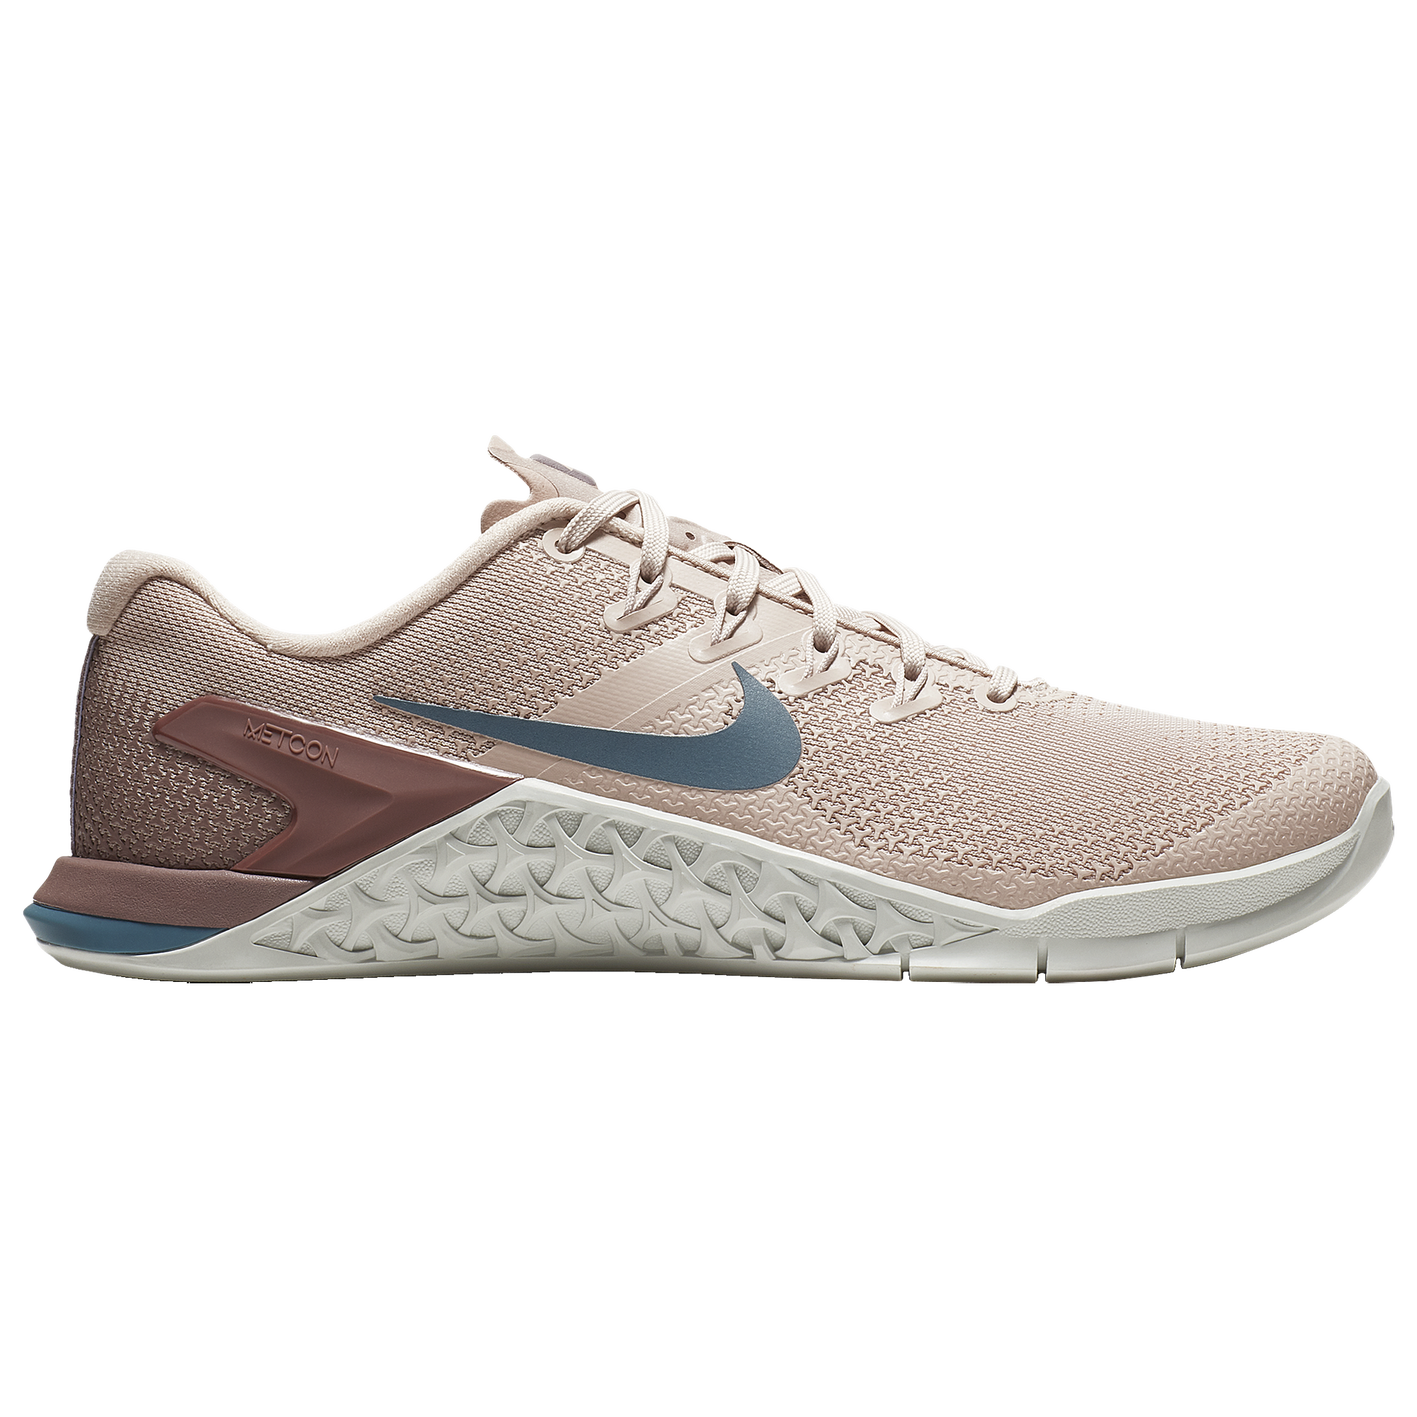 7866671dbc4f1 Nike Metcon 4 - Women s - Training - Shoes - Particle Beige ...